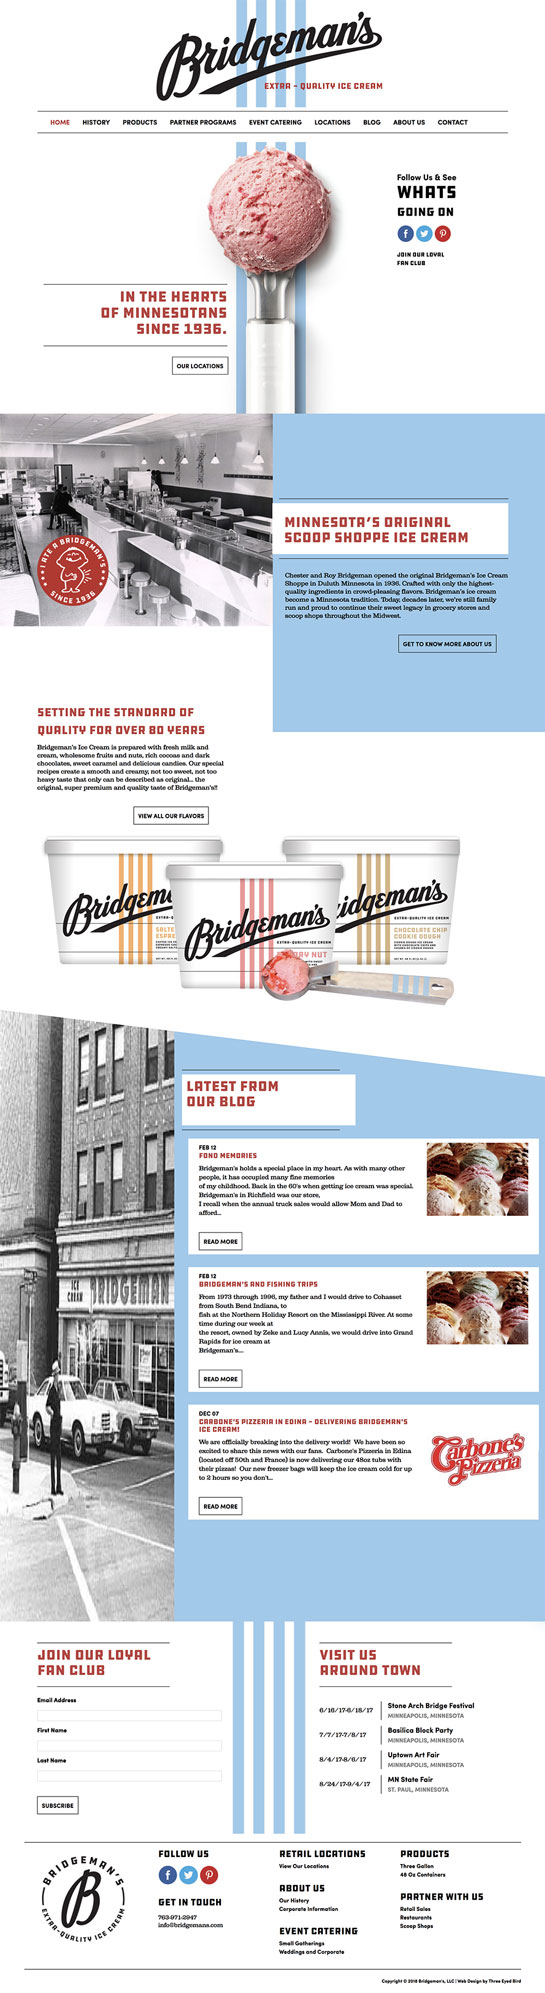 Bridgemans Ice Cream